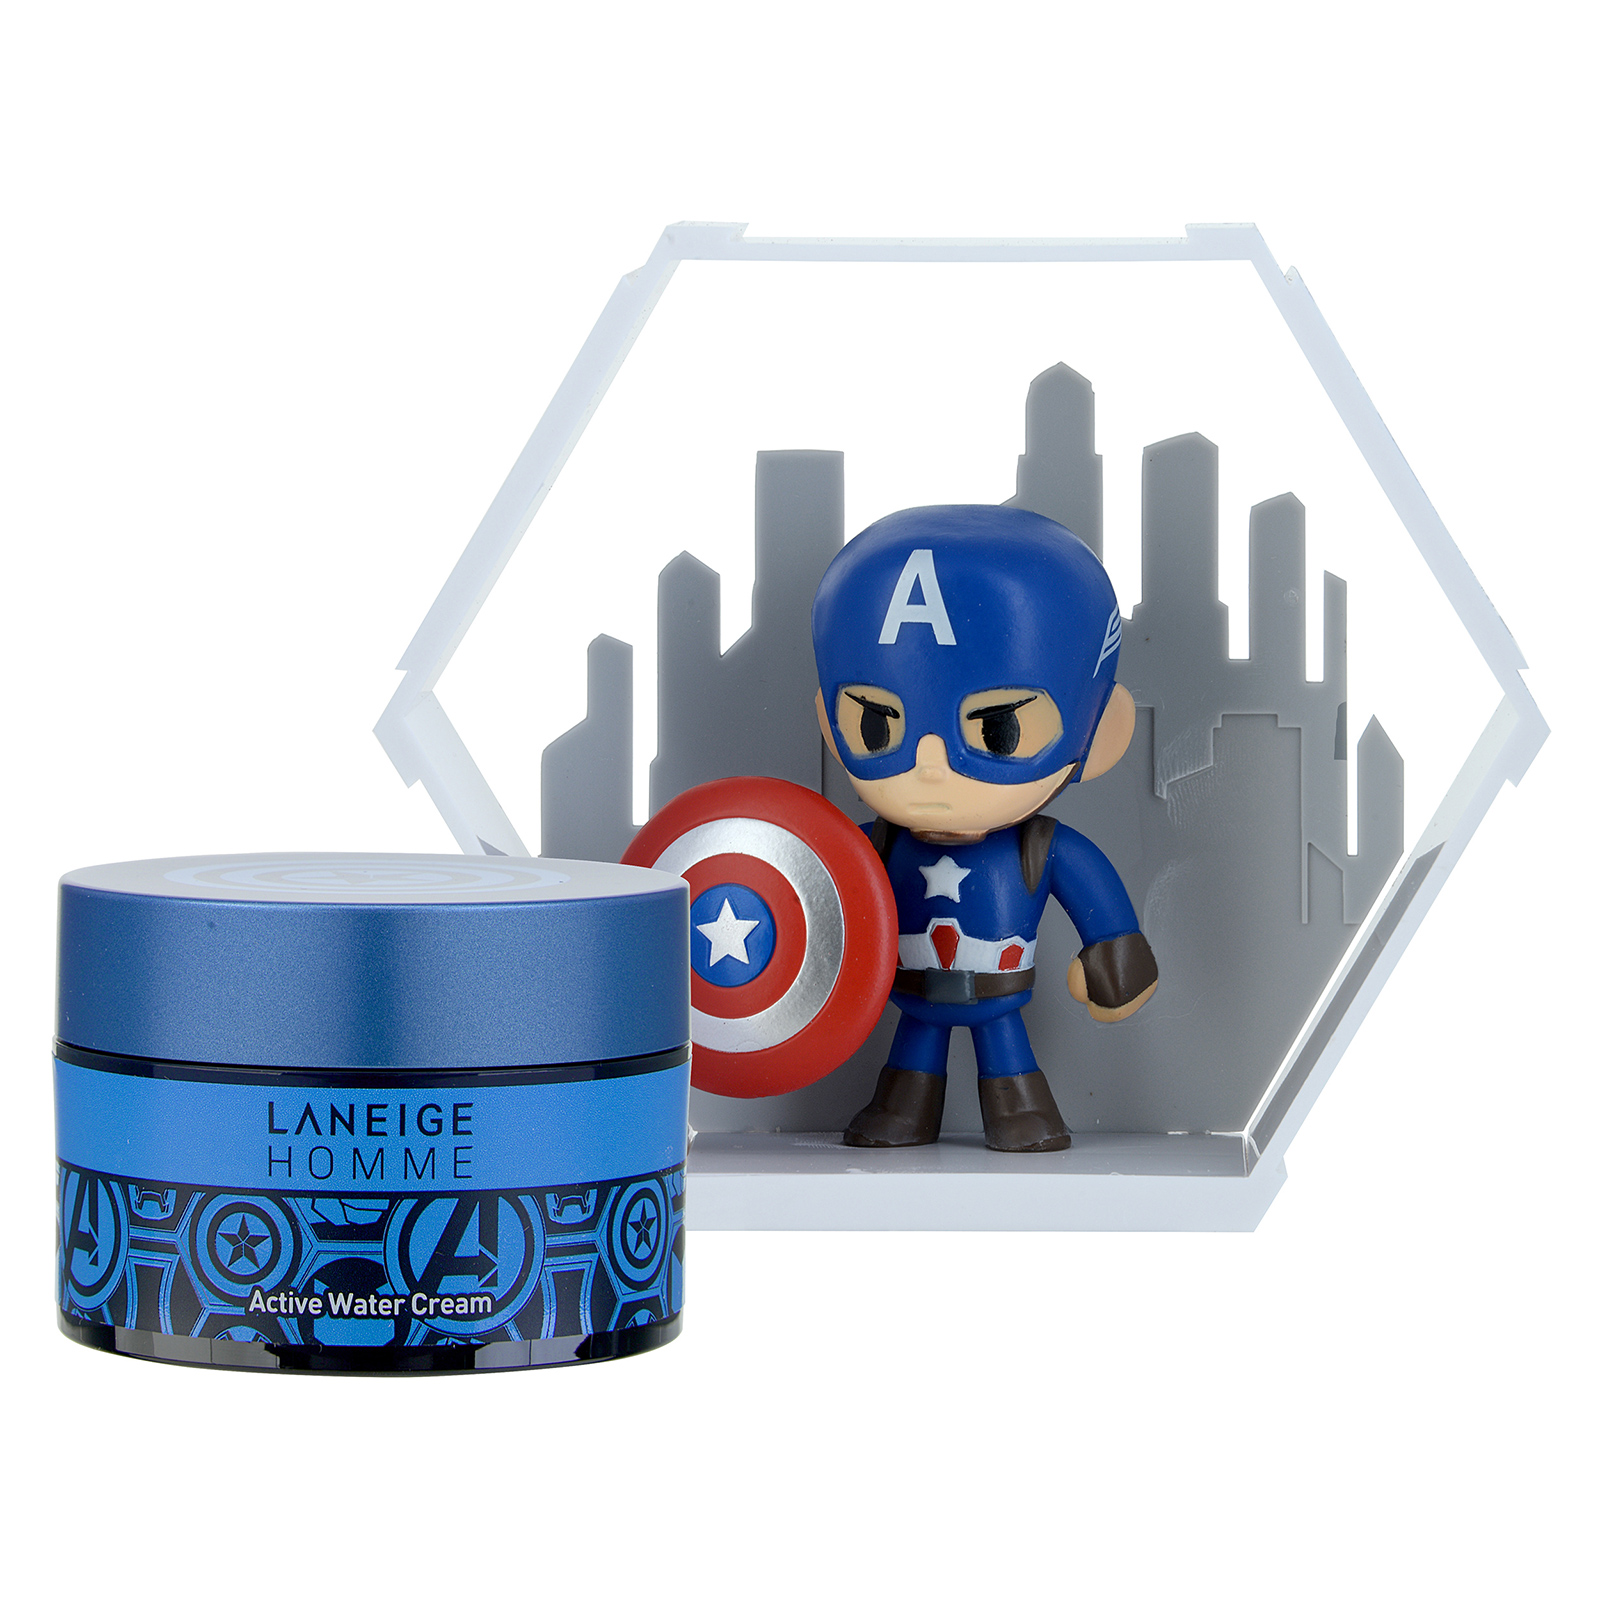 Laneige Homme Homme Active Water Cream Set with Captain America Figure  1set, 2pcs ALN0100186-000-00